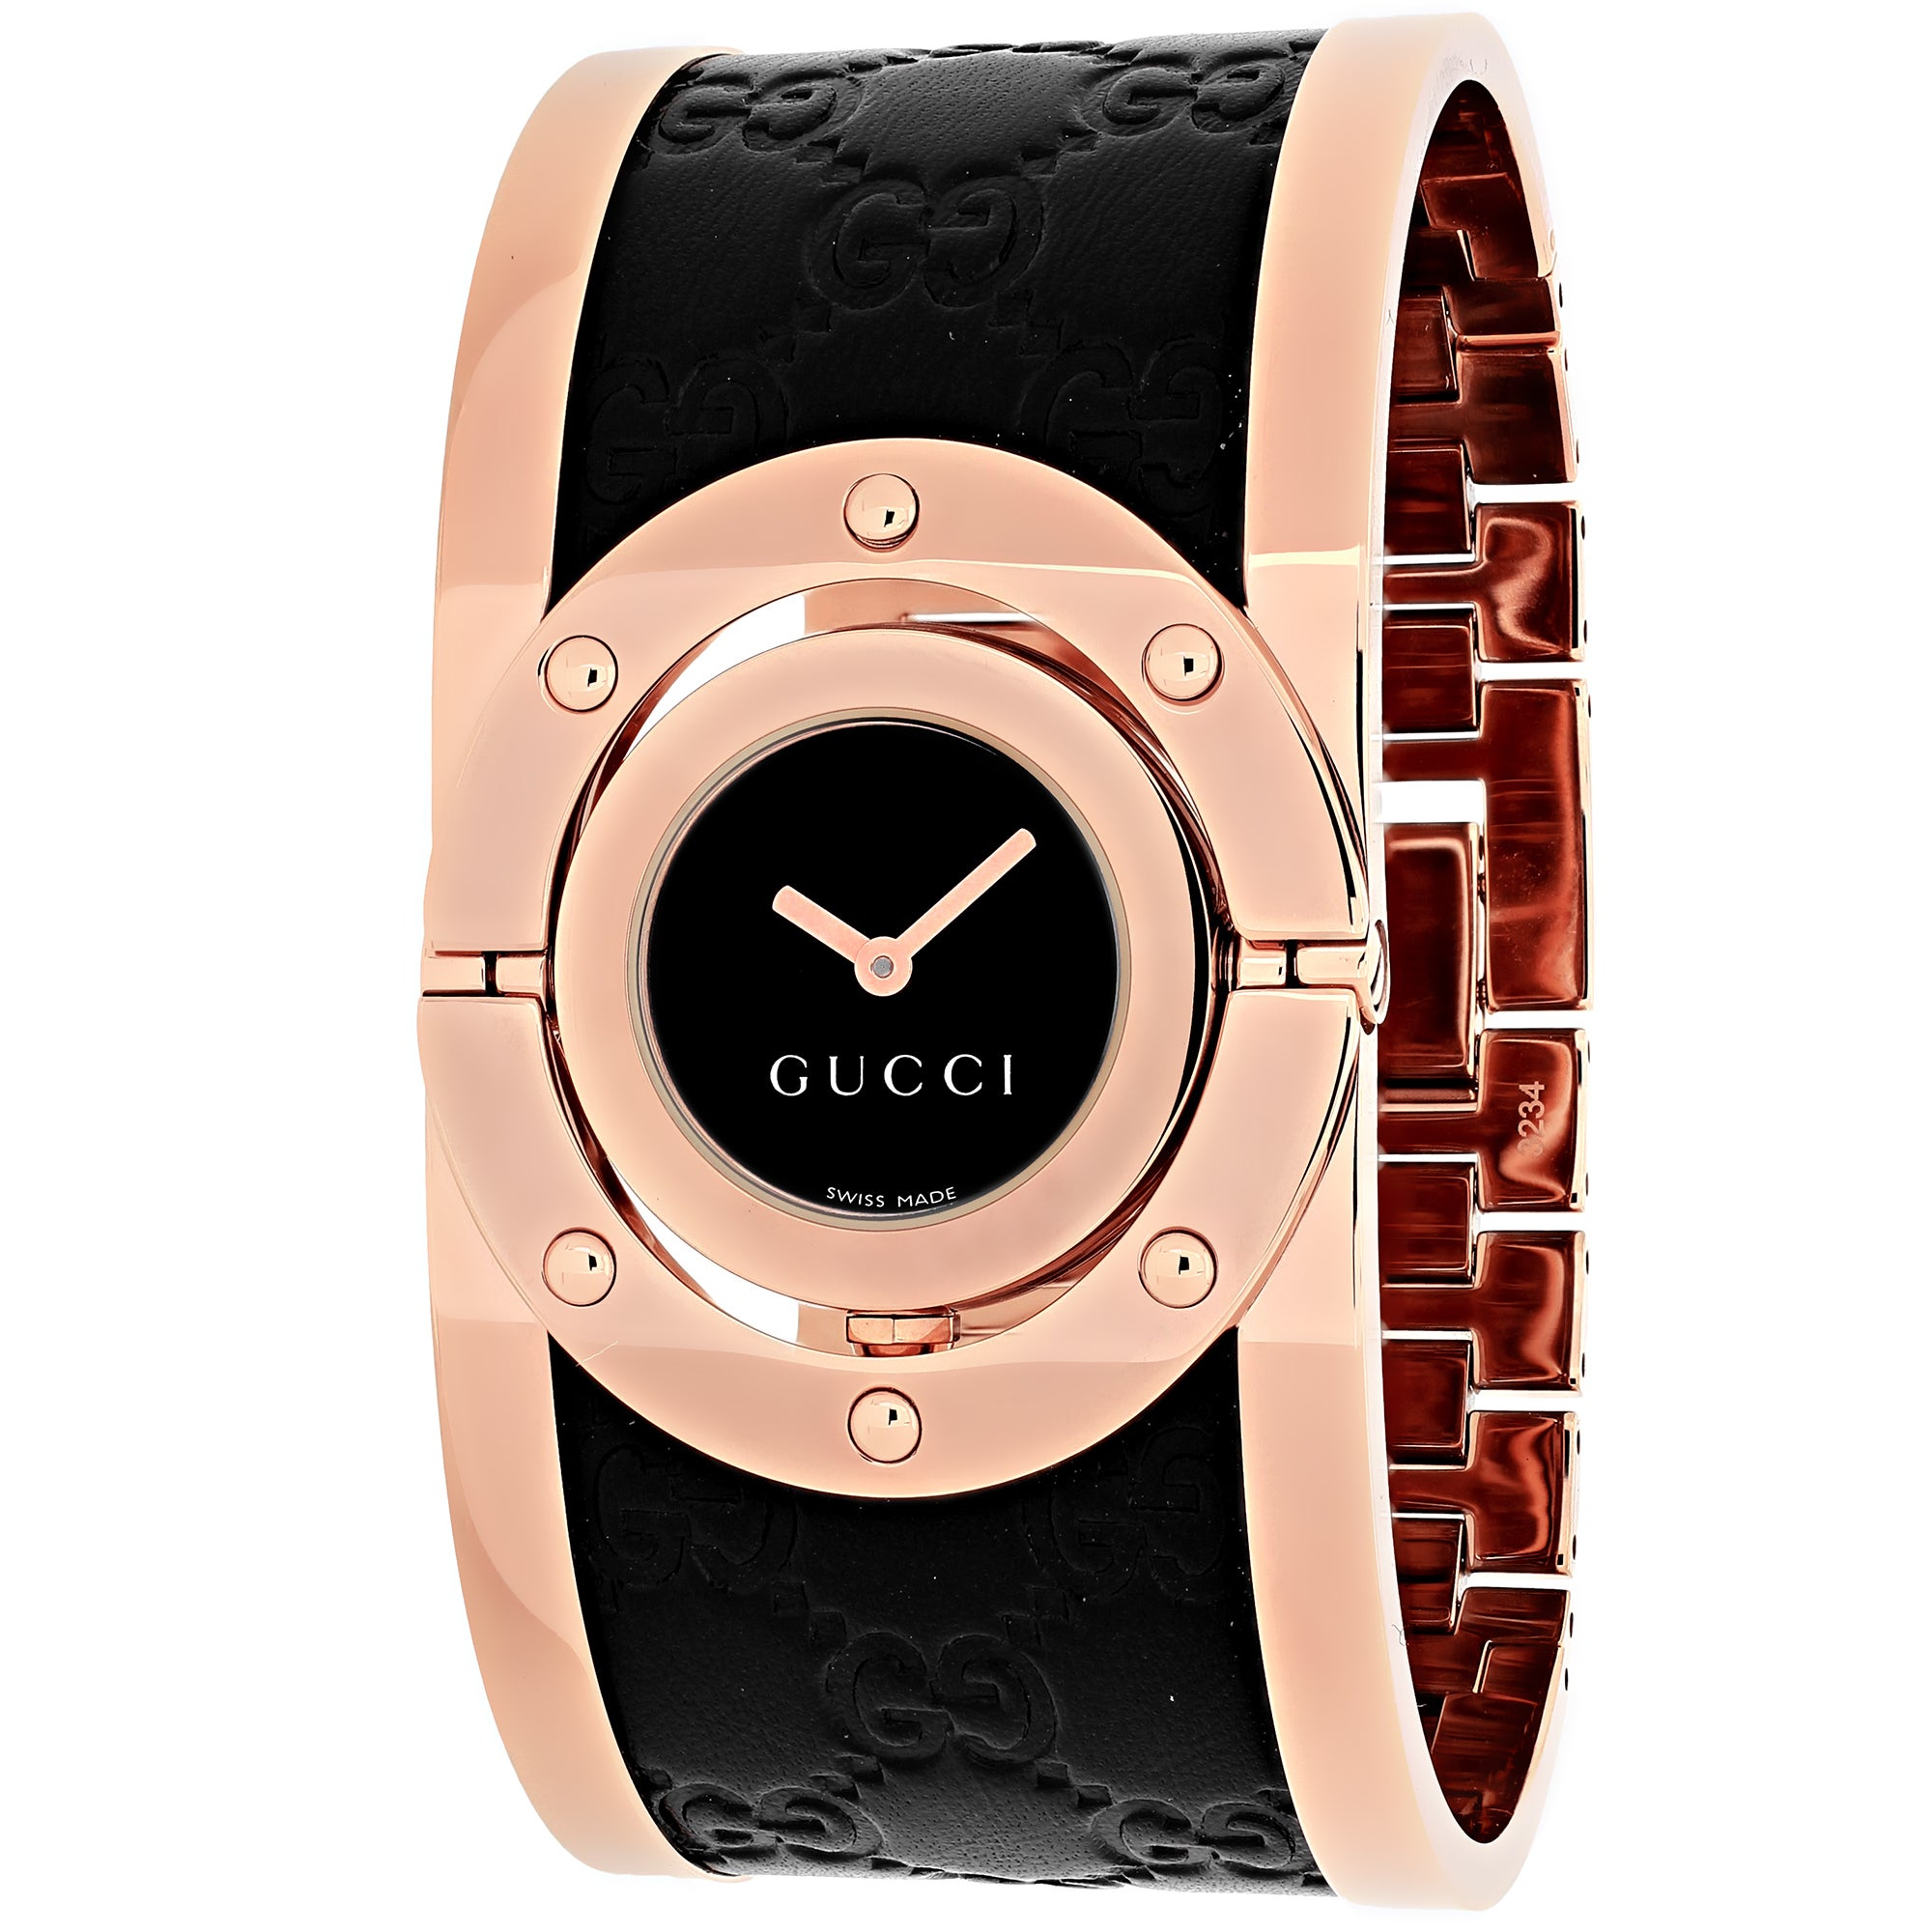 fe206607e11 Shop Gucci Women s Quartz Twirl Rose Goldtone Guccissima Leather Watch -  Free Shipping Today - Overstock - 9804249